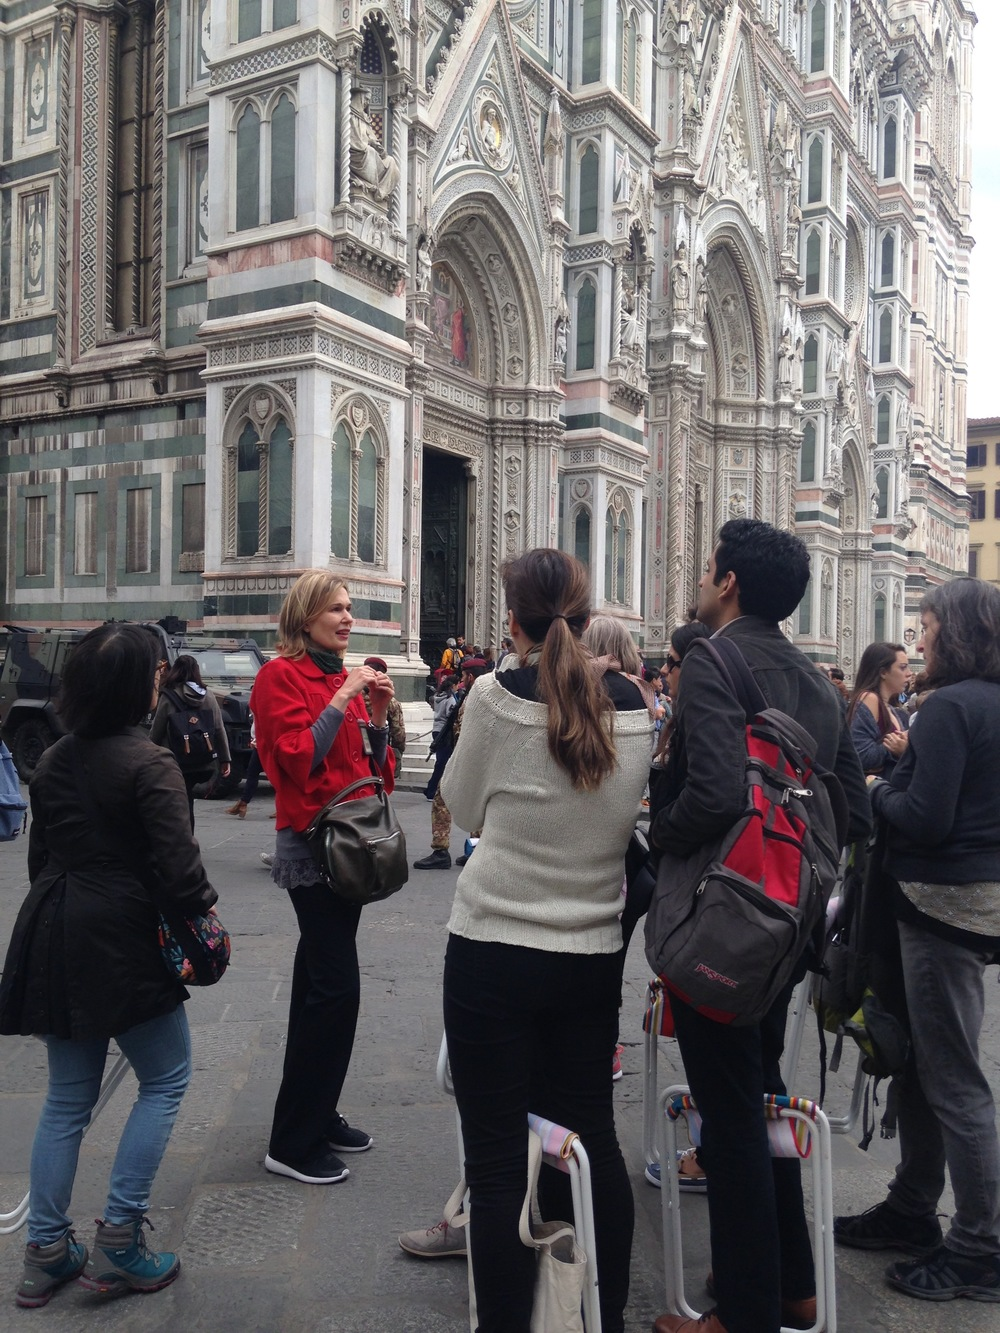 Guided tour of Florence with Costanza, our historian!